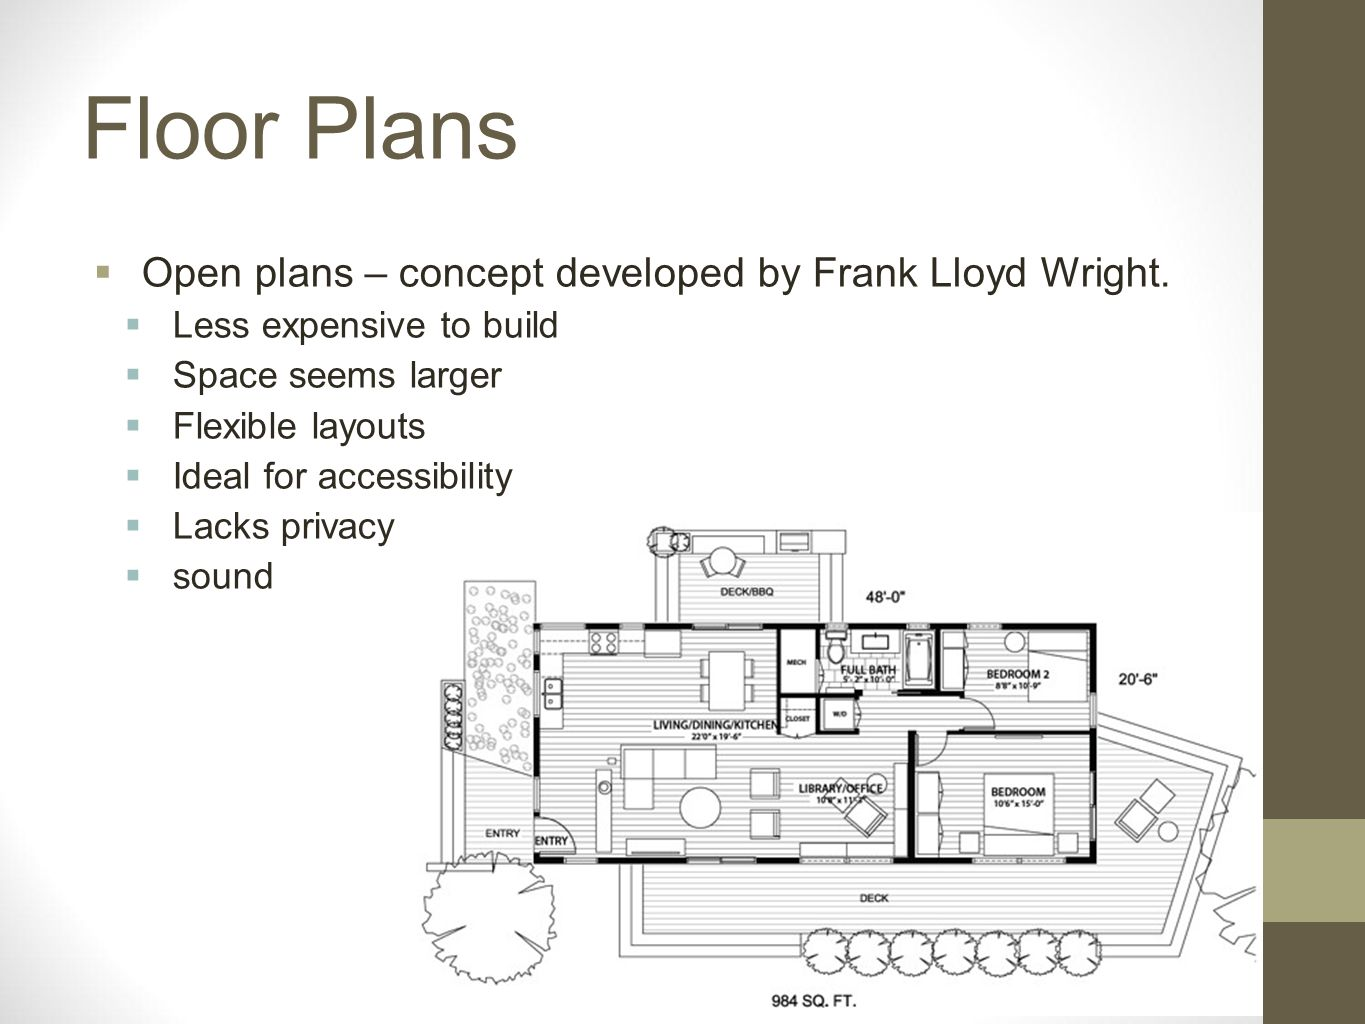 Floor Plans Open plans – concept developed by Frank Lloyd Wright.